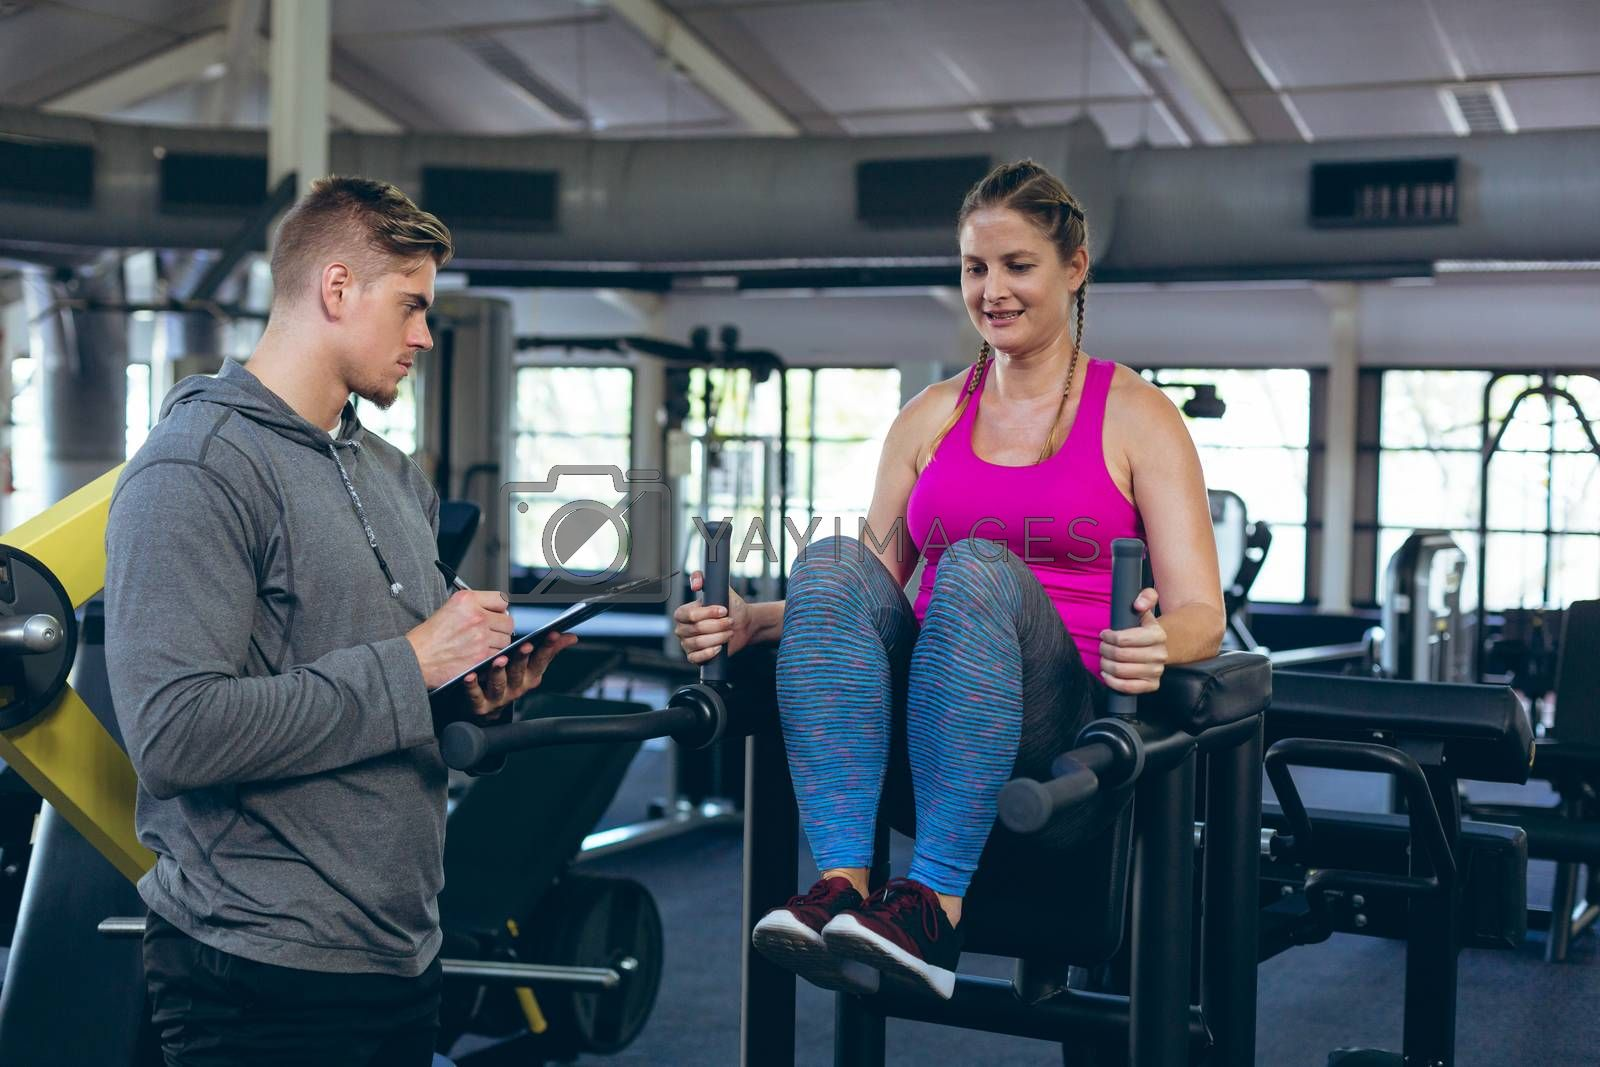 Side view of Caucasian Male trainer assisting young Caucasian female athlete with exercise in fitness studio. Bright modern gym with fit healthy people working out and training